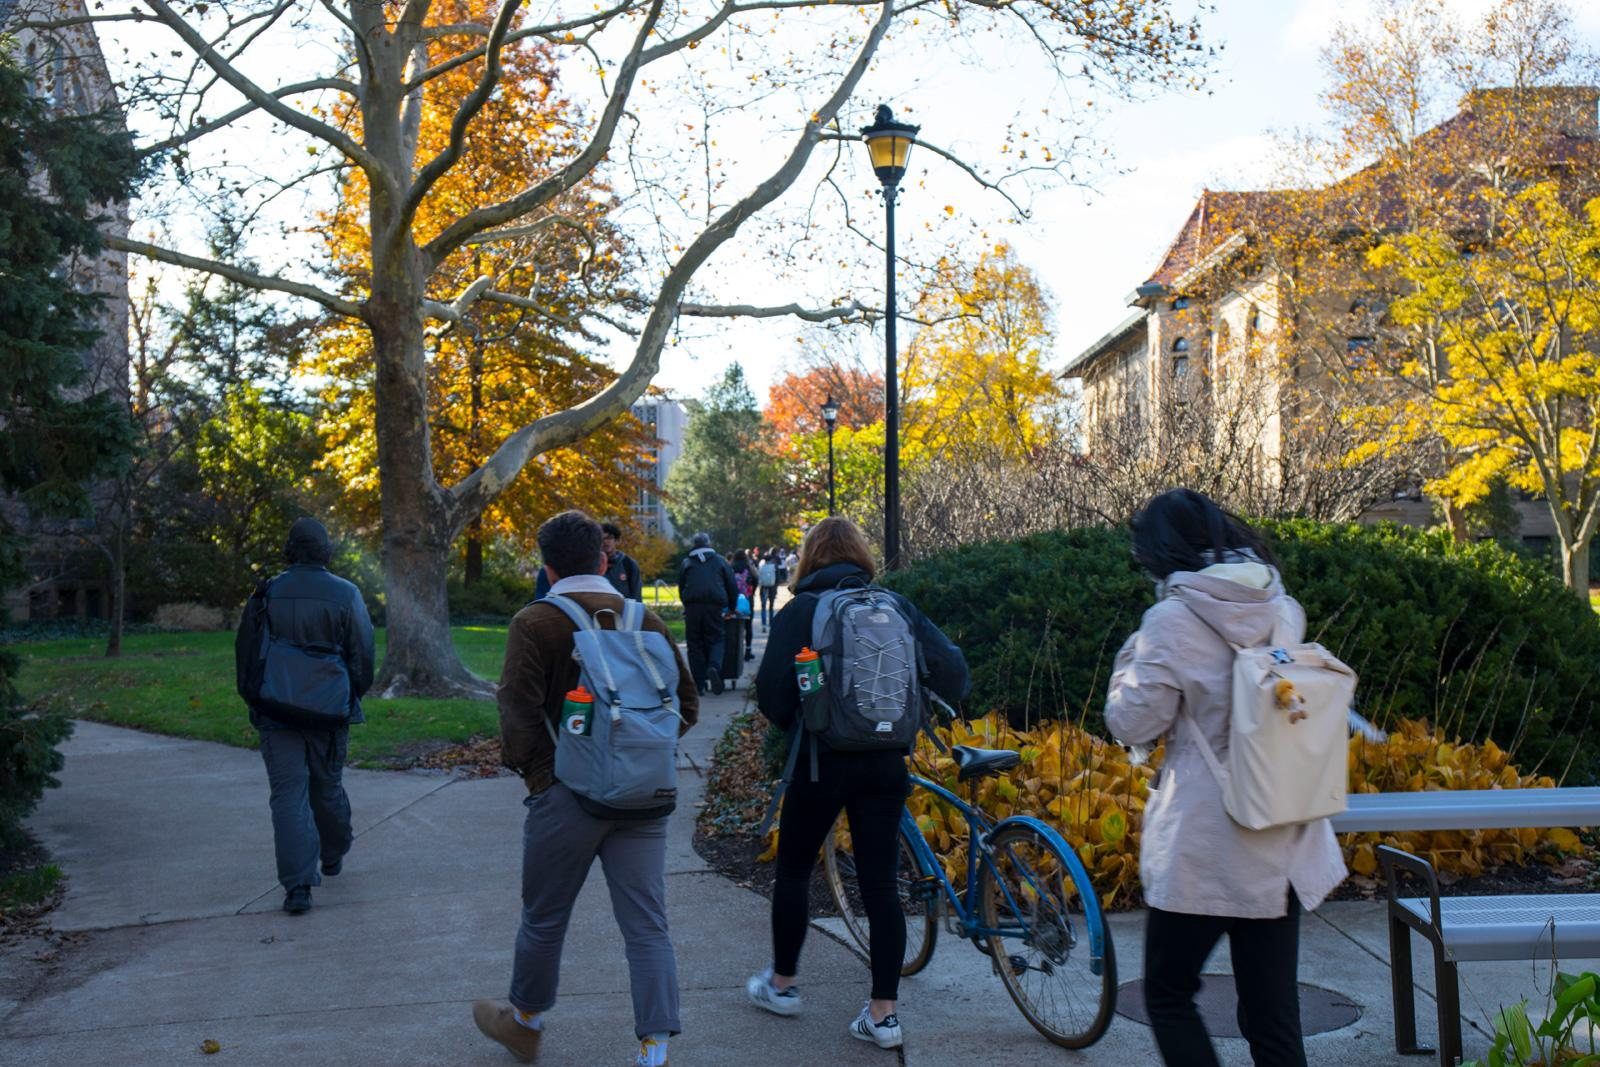 Students with backpacks walk across campus.